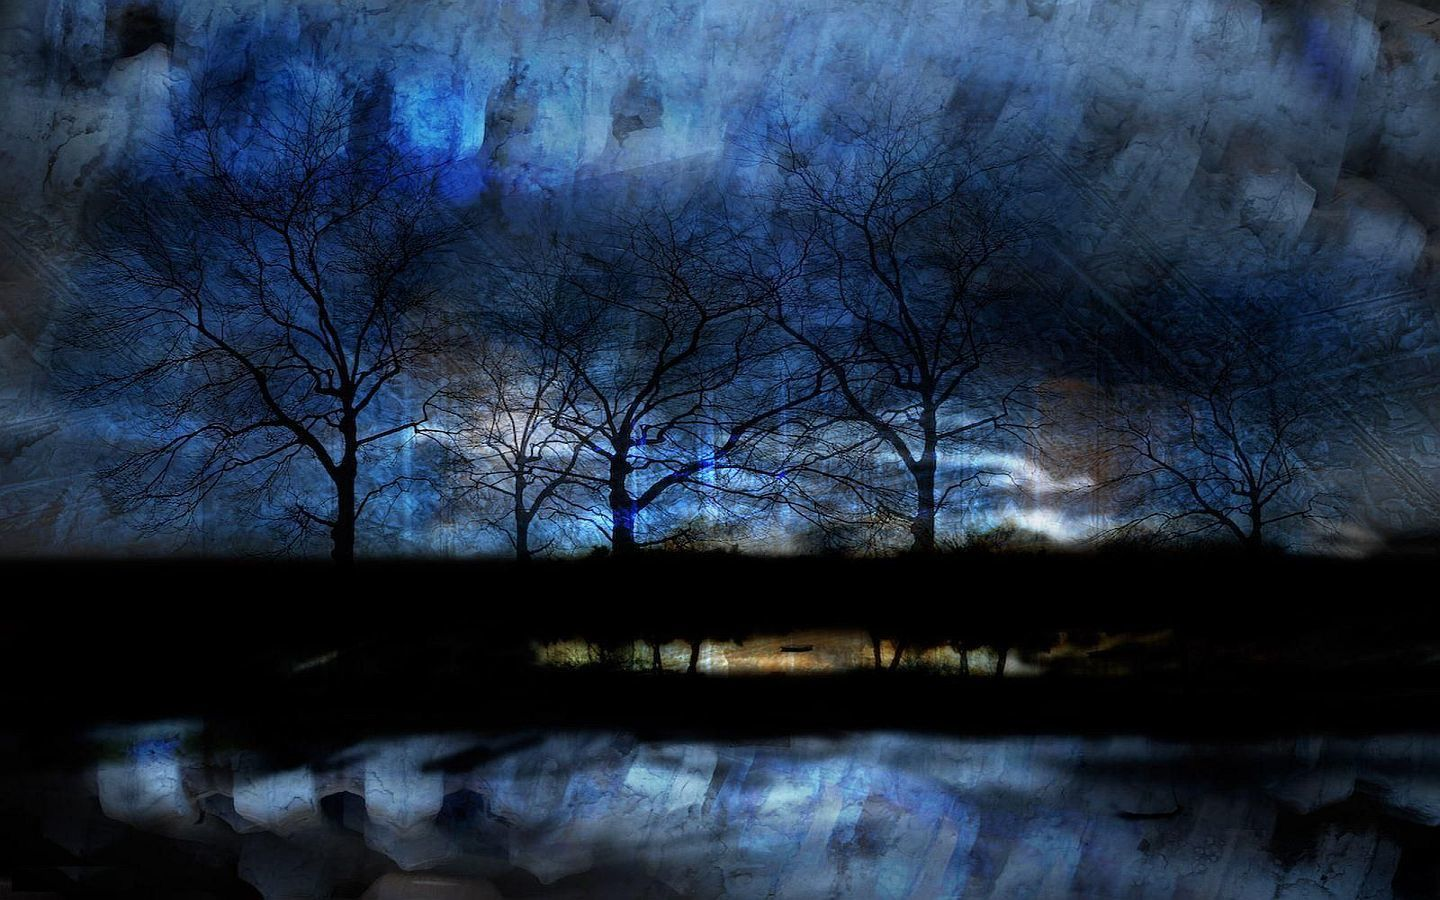 Paysage - Arbres - Nuit - Wallpapers - Free